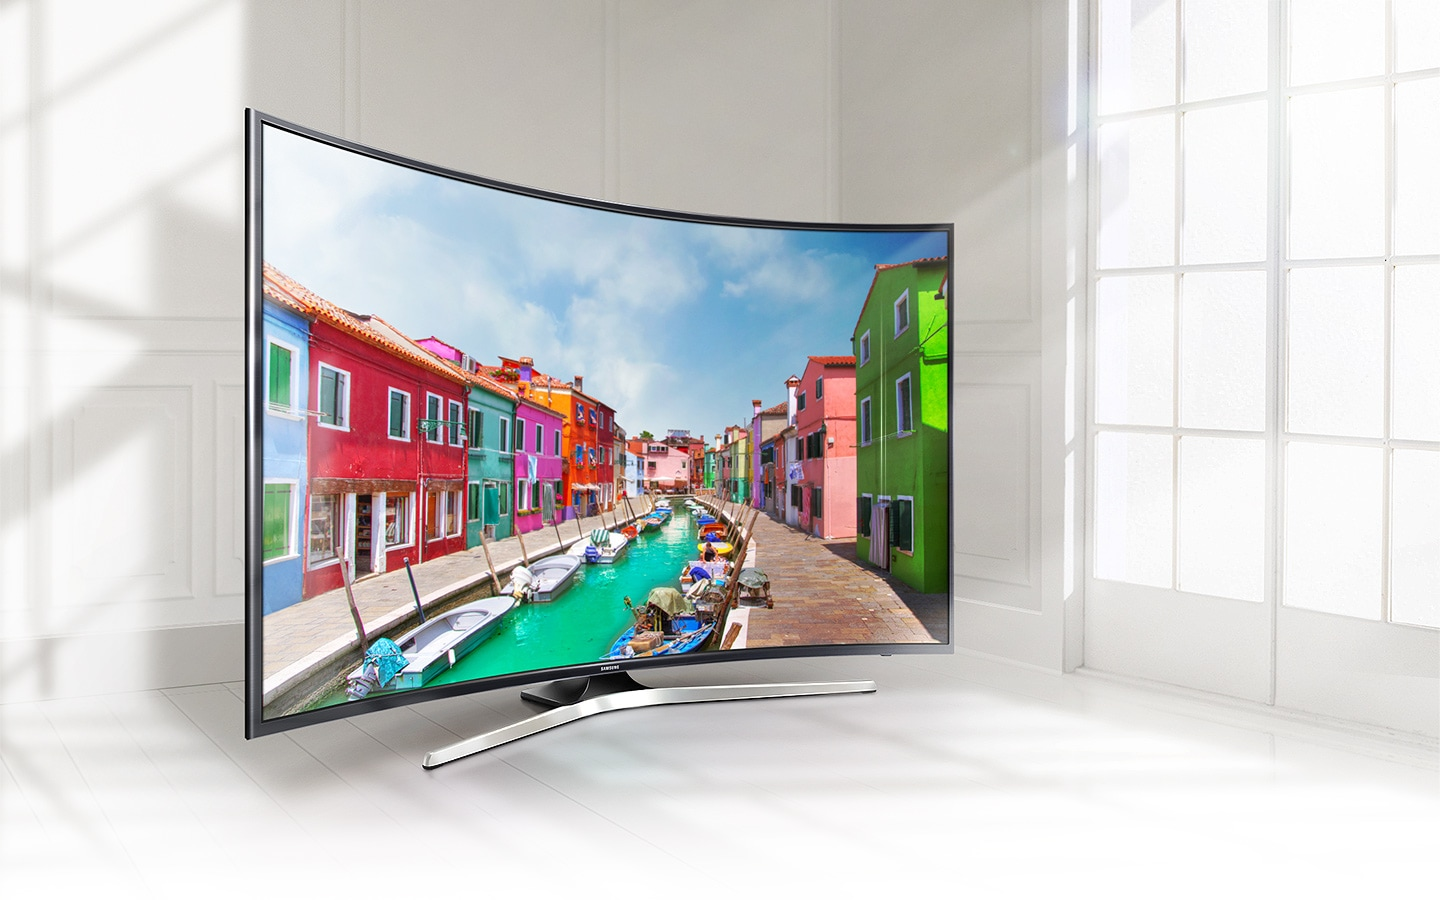 The 4K UHD TV